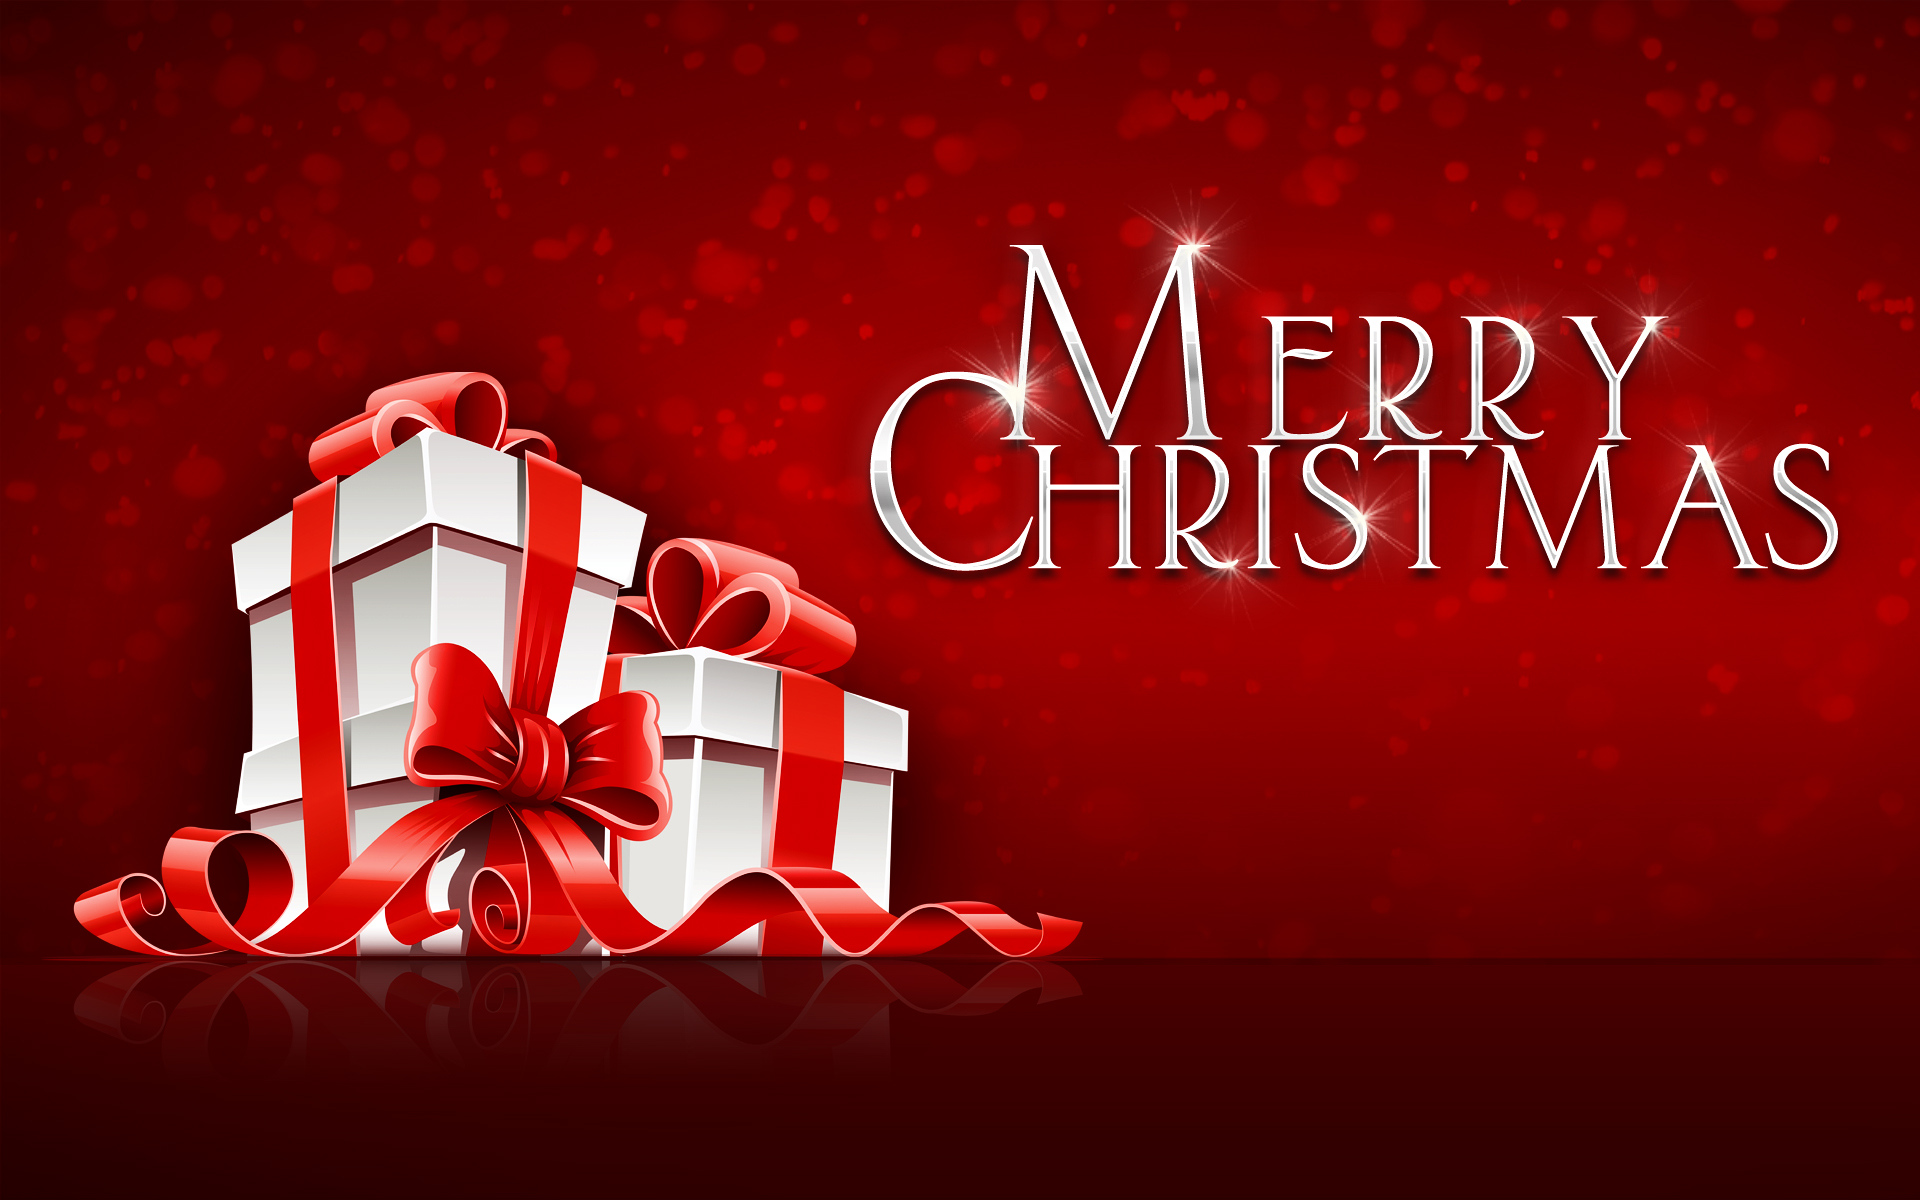 {Best}* Merry Christmas 2016 WhatsApp & Facebook Status